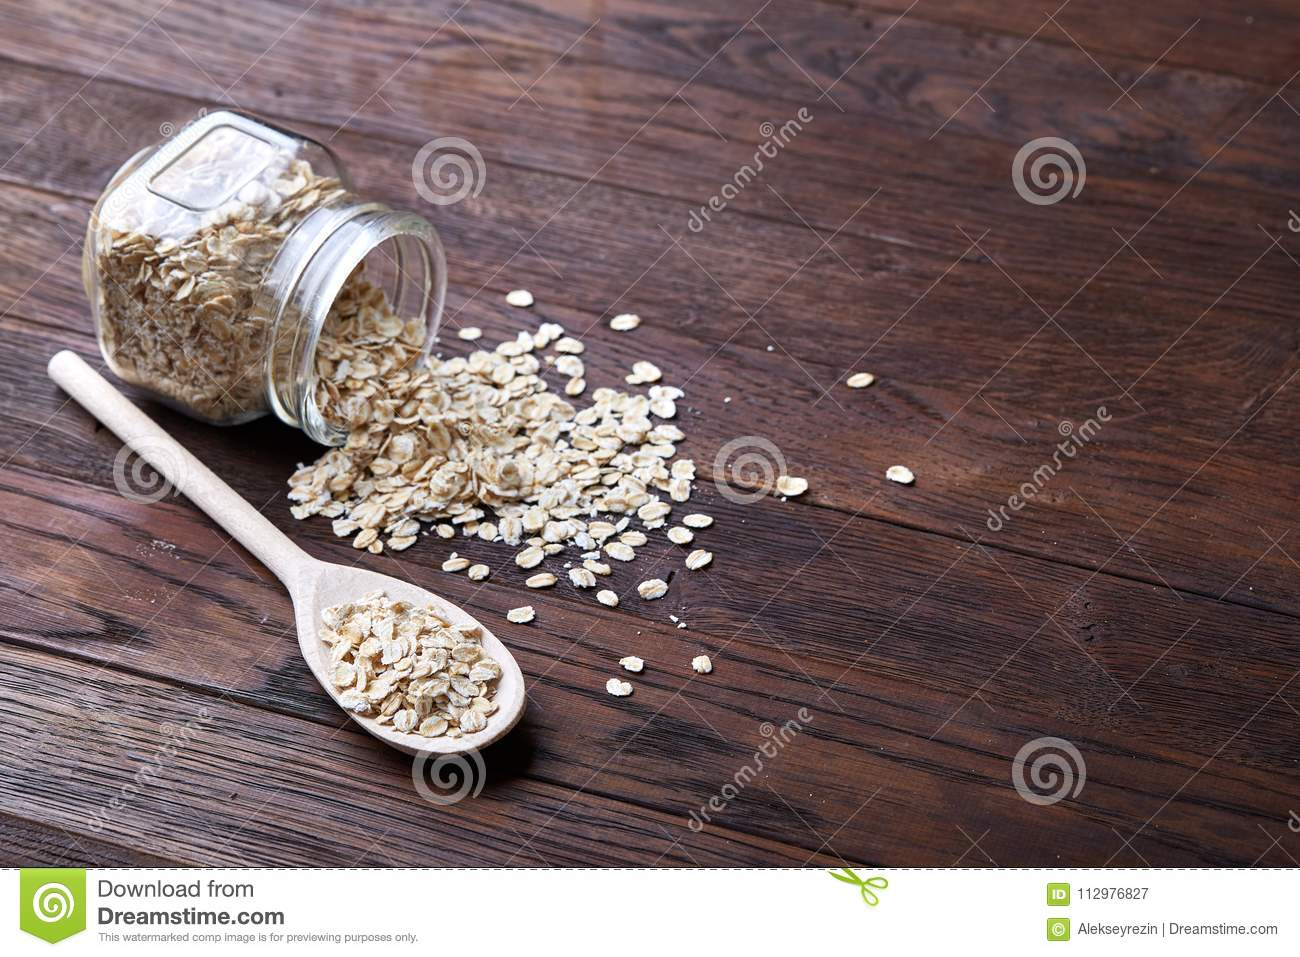 Overturned glass jar and spoon with raw oatmeal on vintage wooden background, close-up, selective focus.